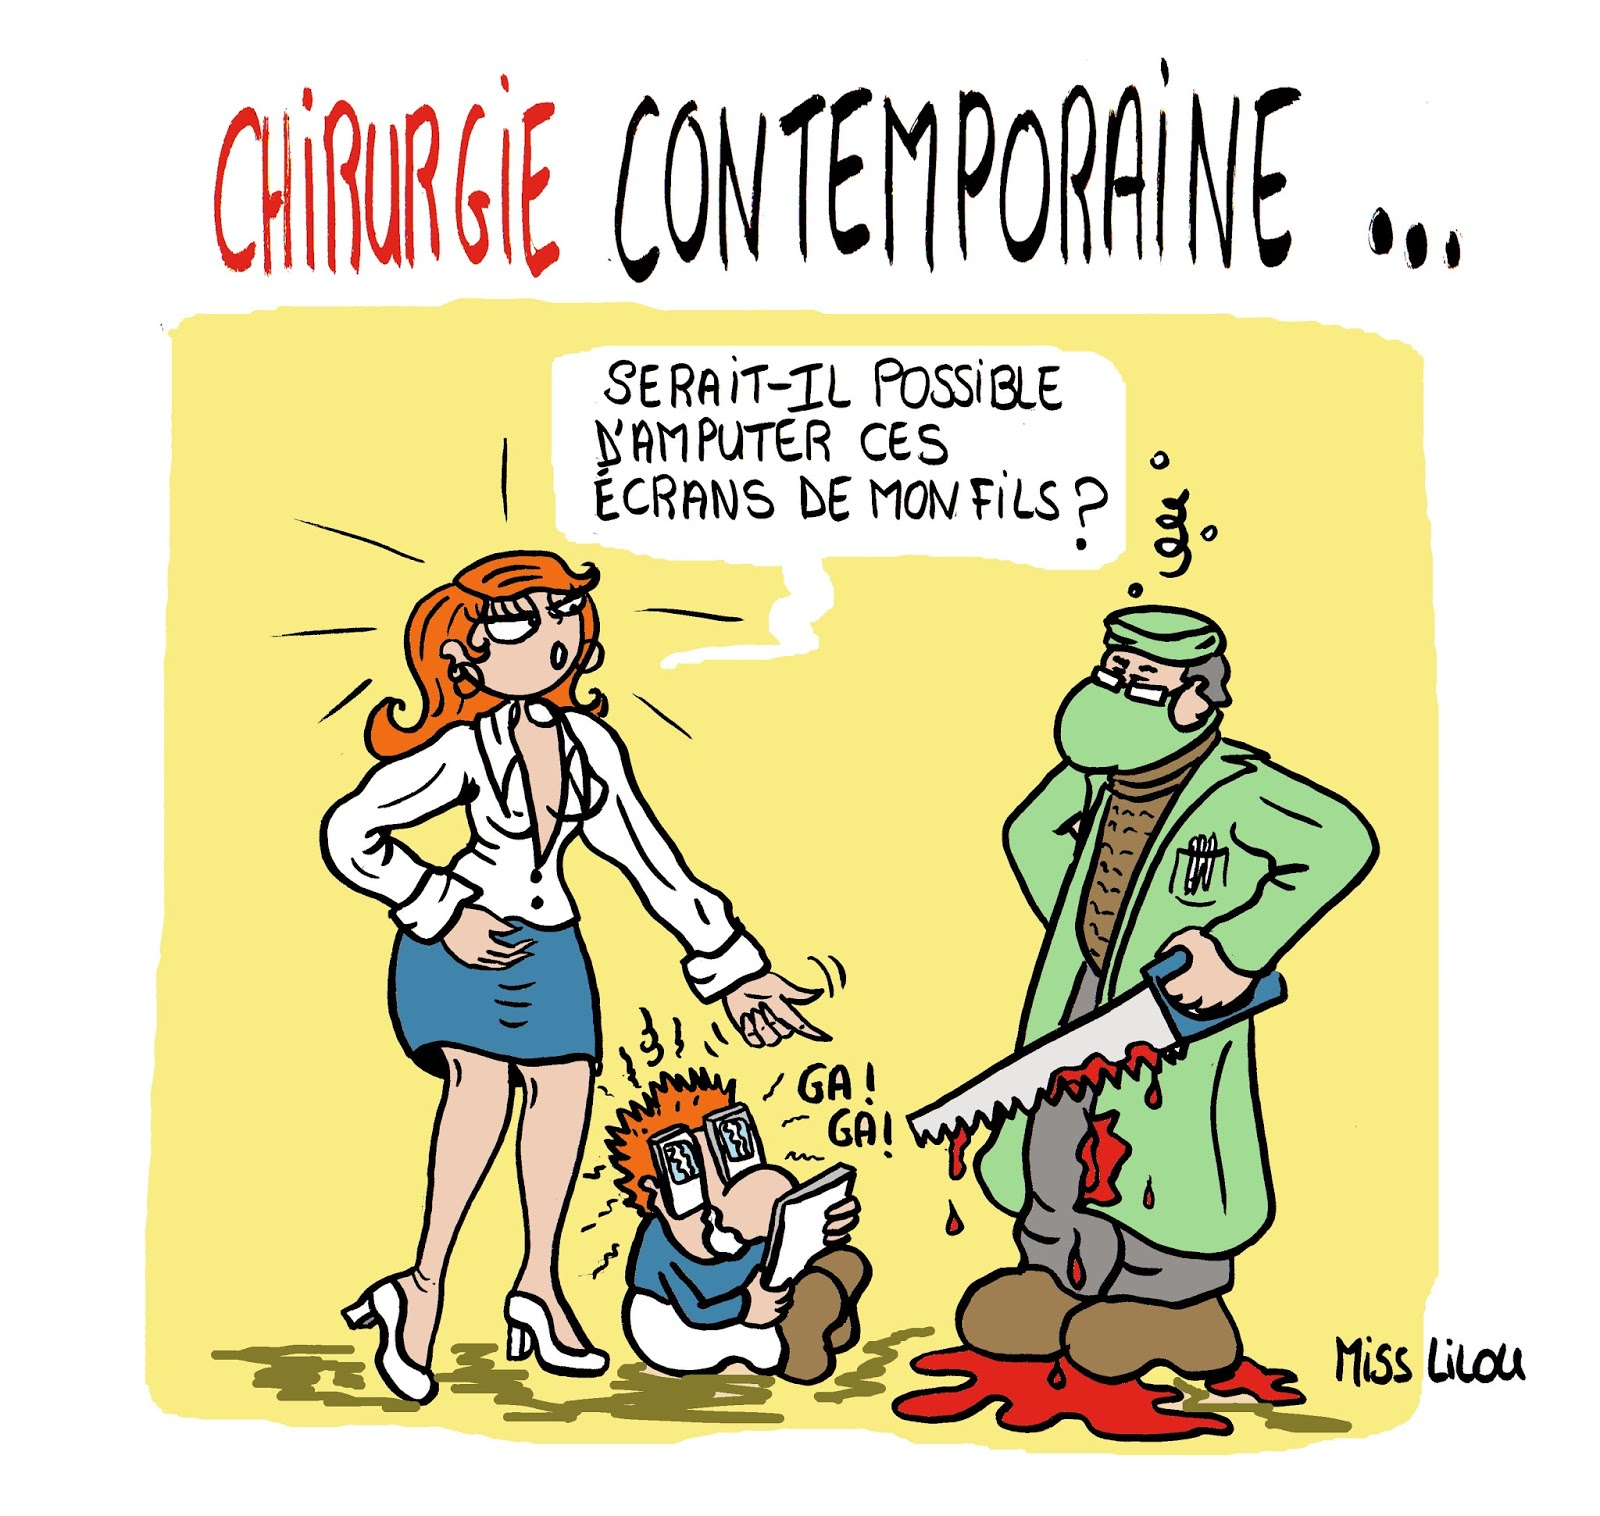 acturatons  chirurgie contemporaine